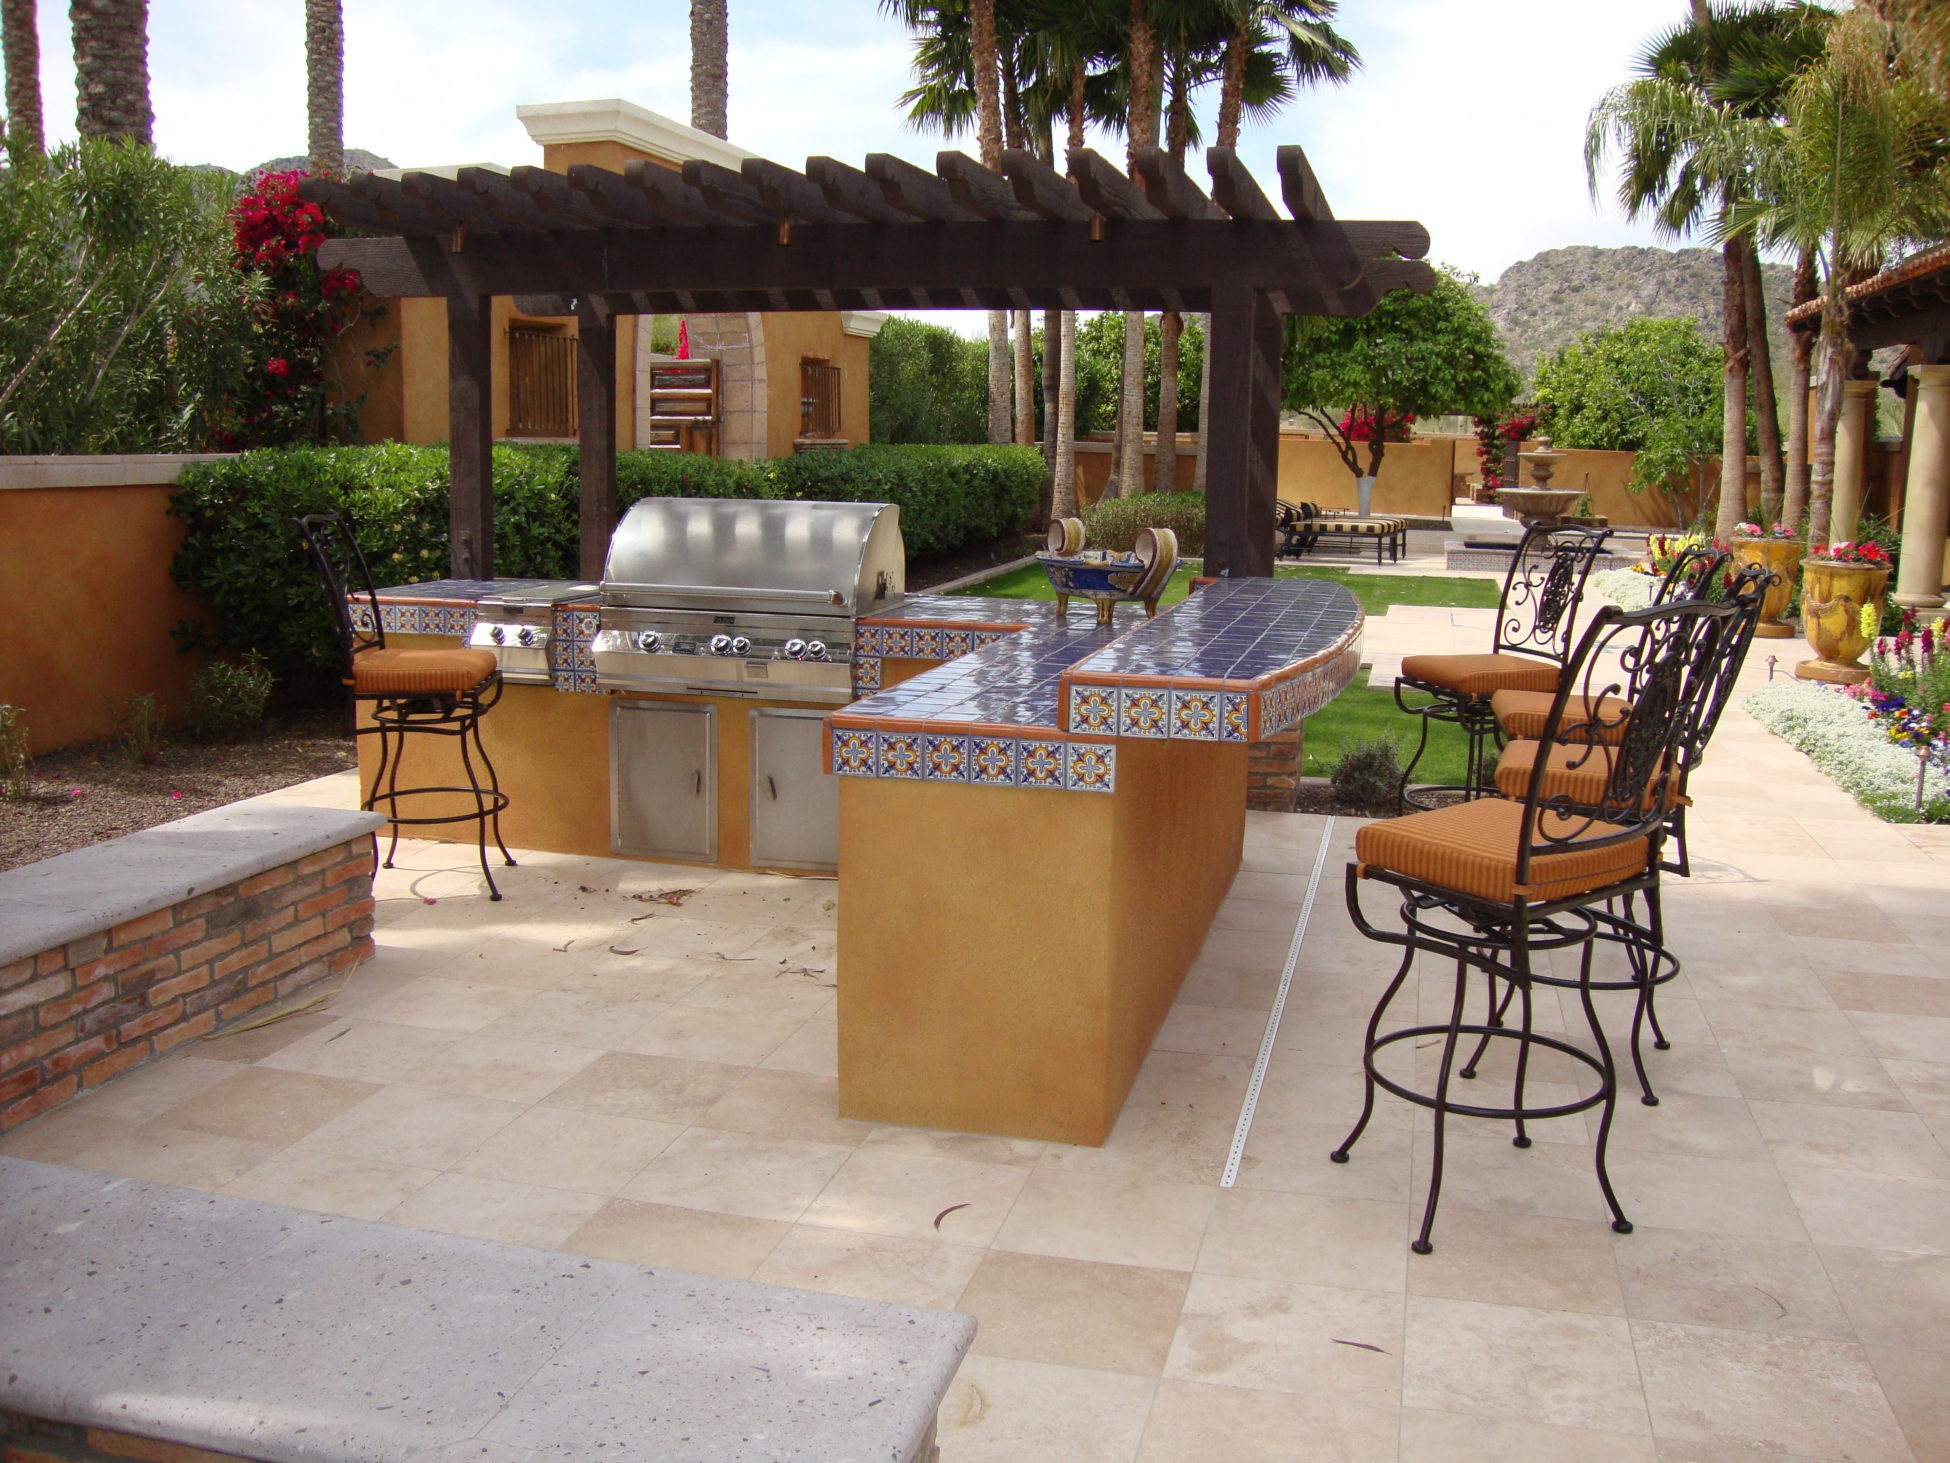 beautiful outdoor kitchens in arizona - Outdoor Kitchen Designs Photos